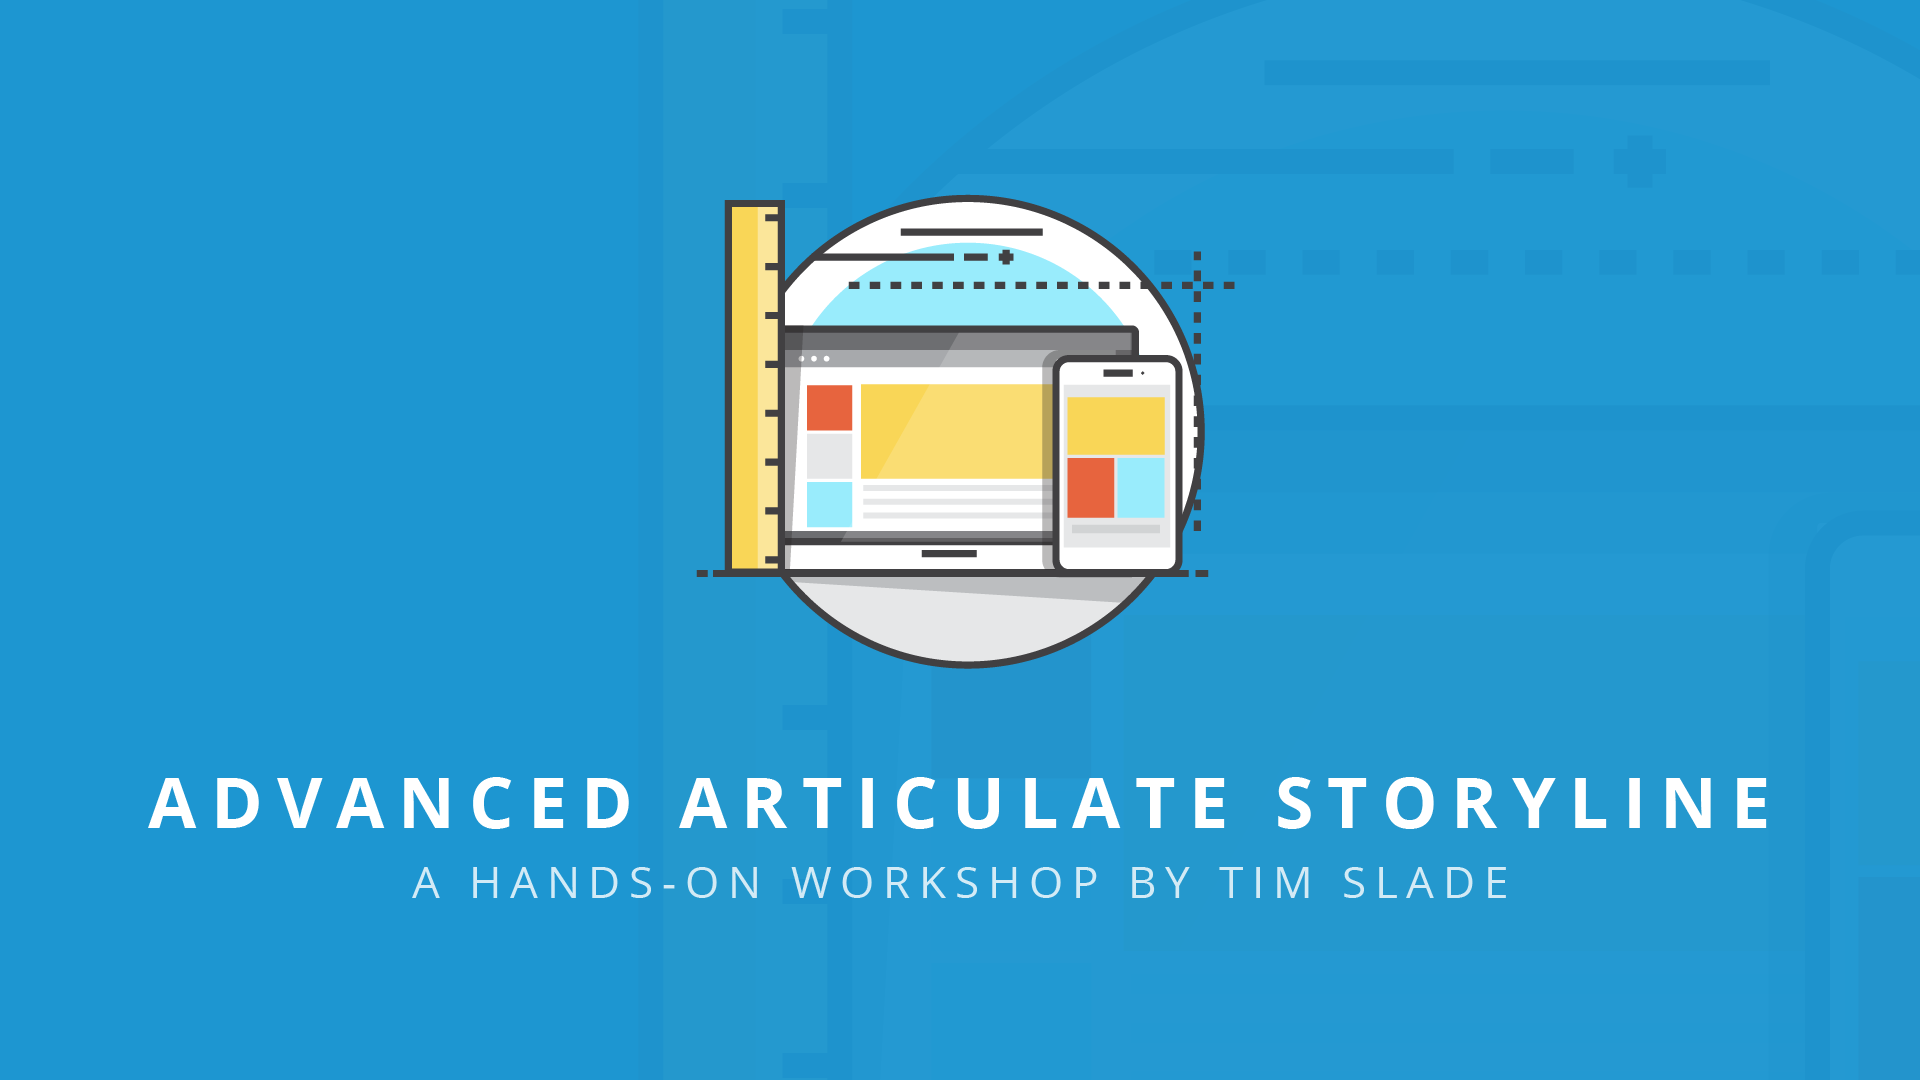 advanced articulate storyline - eLearning Workshops by Tim Slade